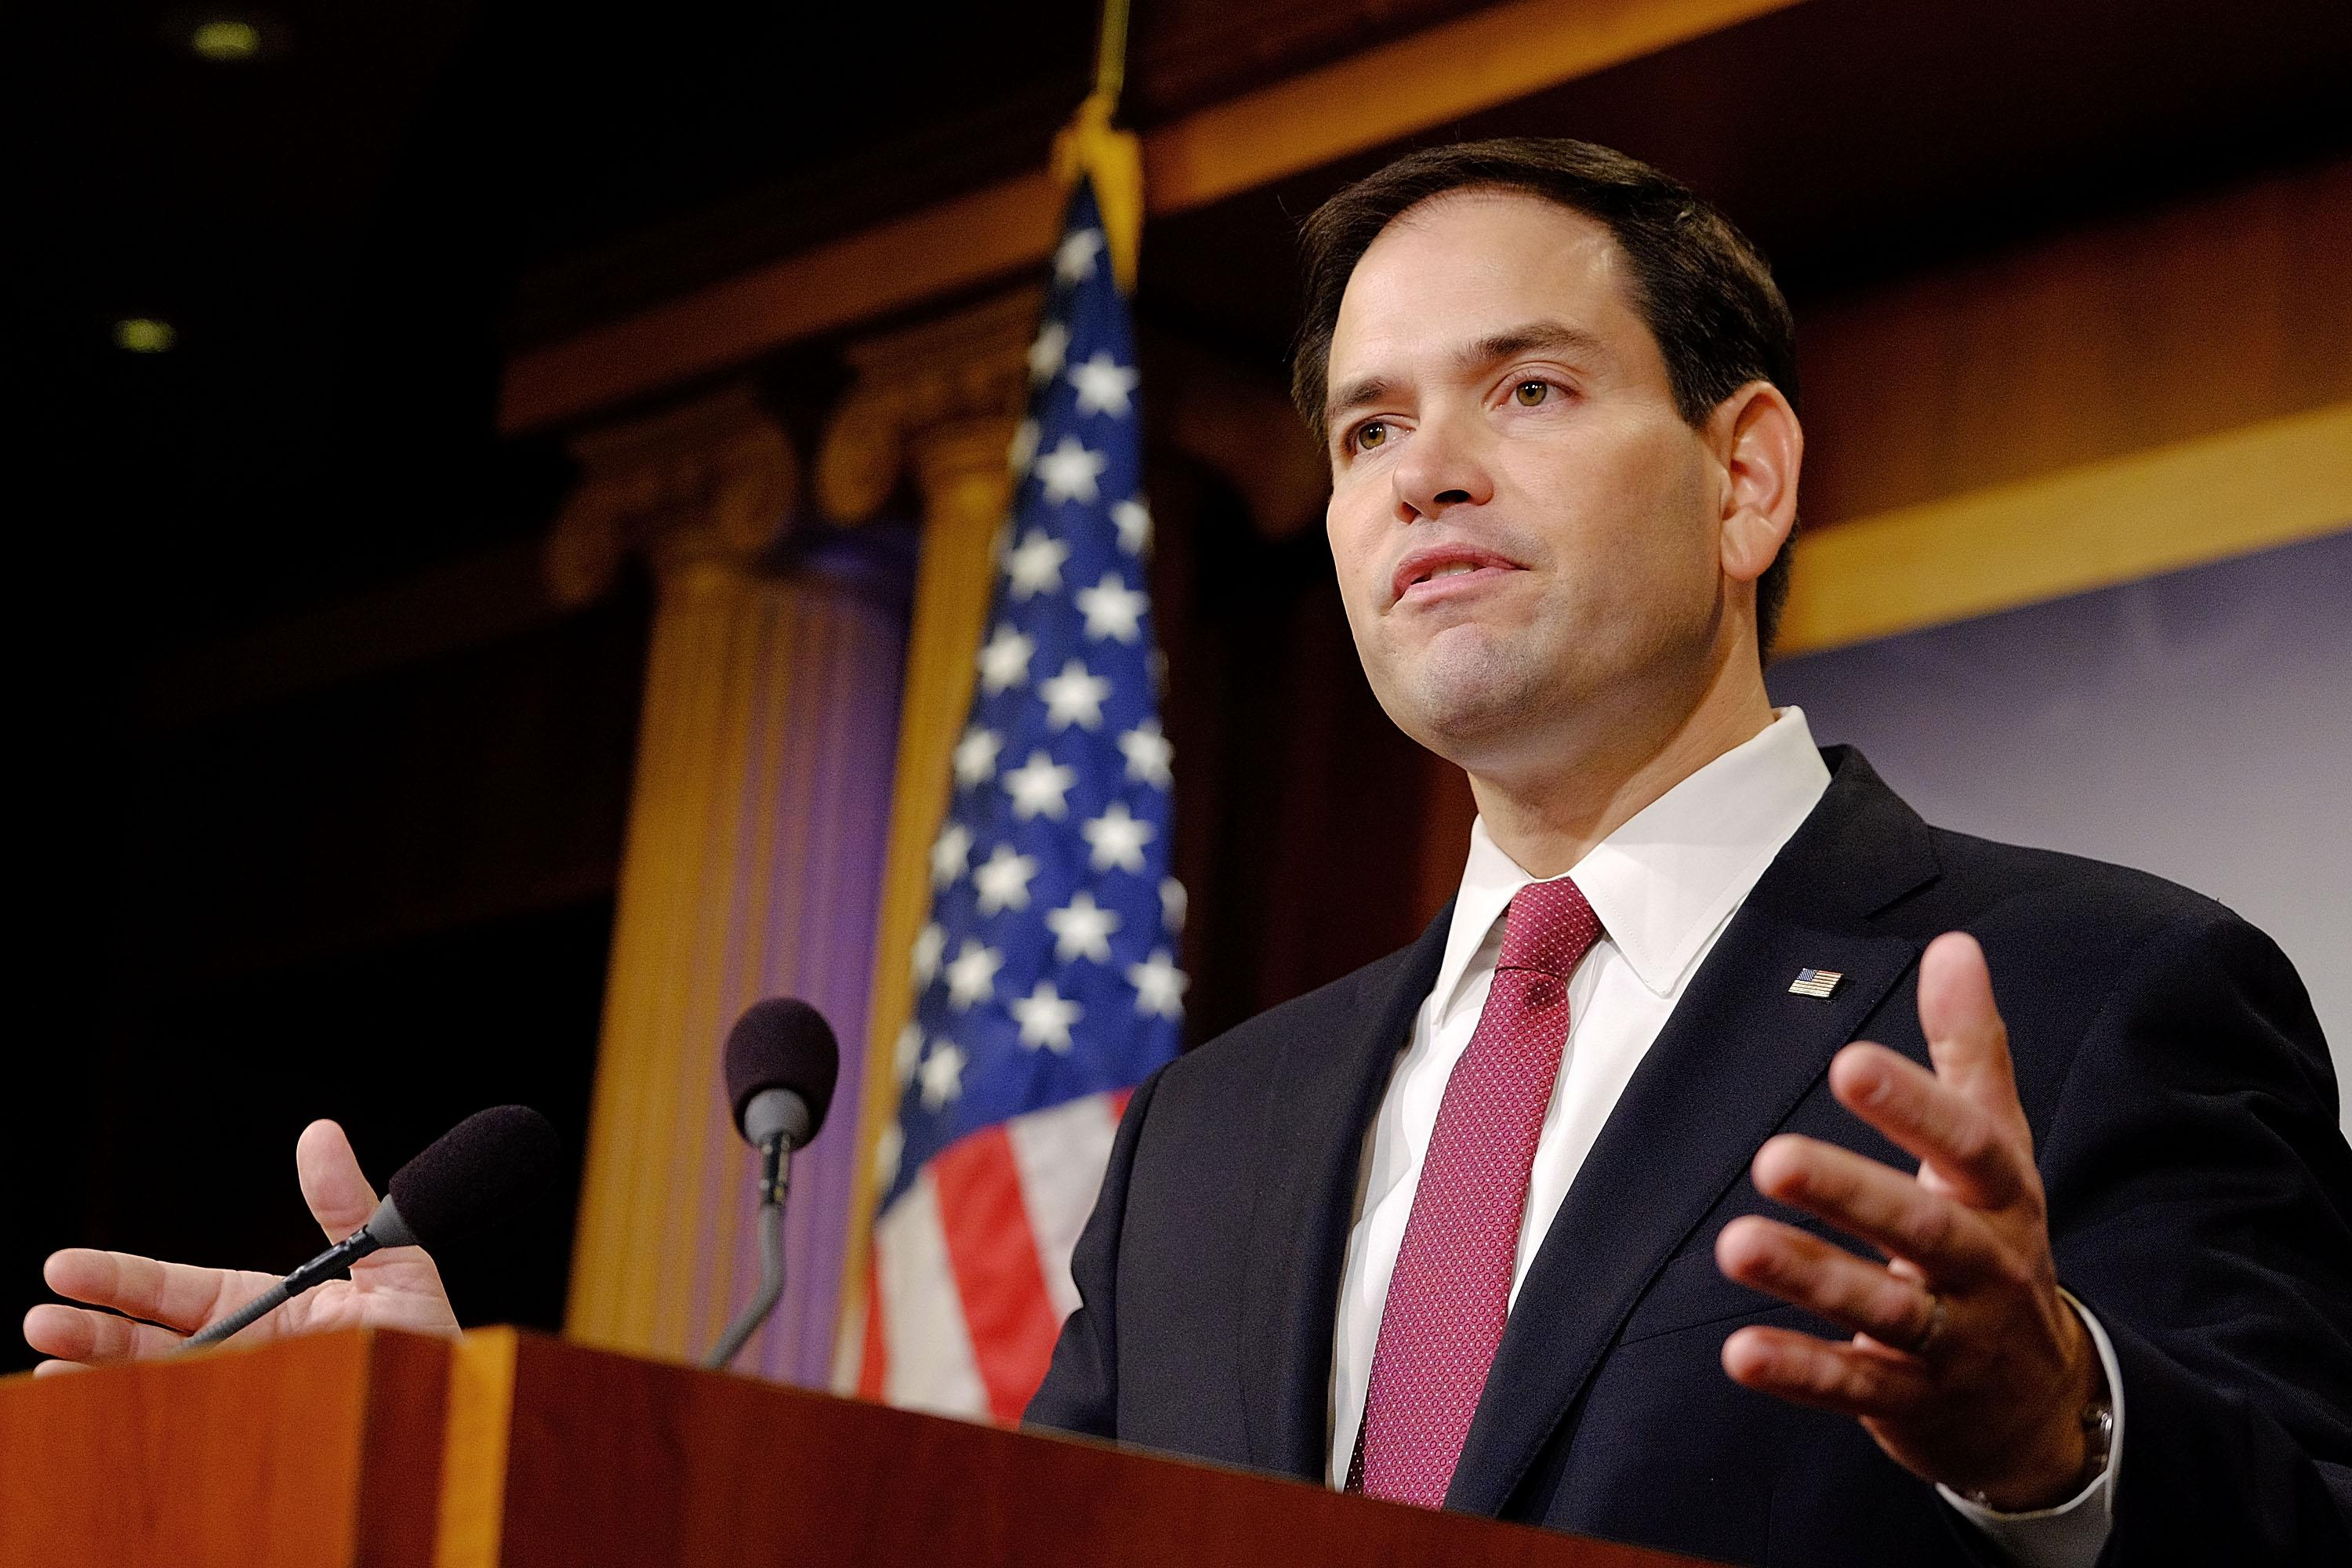 Rubio, other US lawmakers furious over Obama's Cuba move